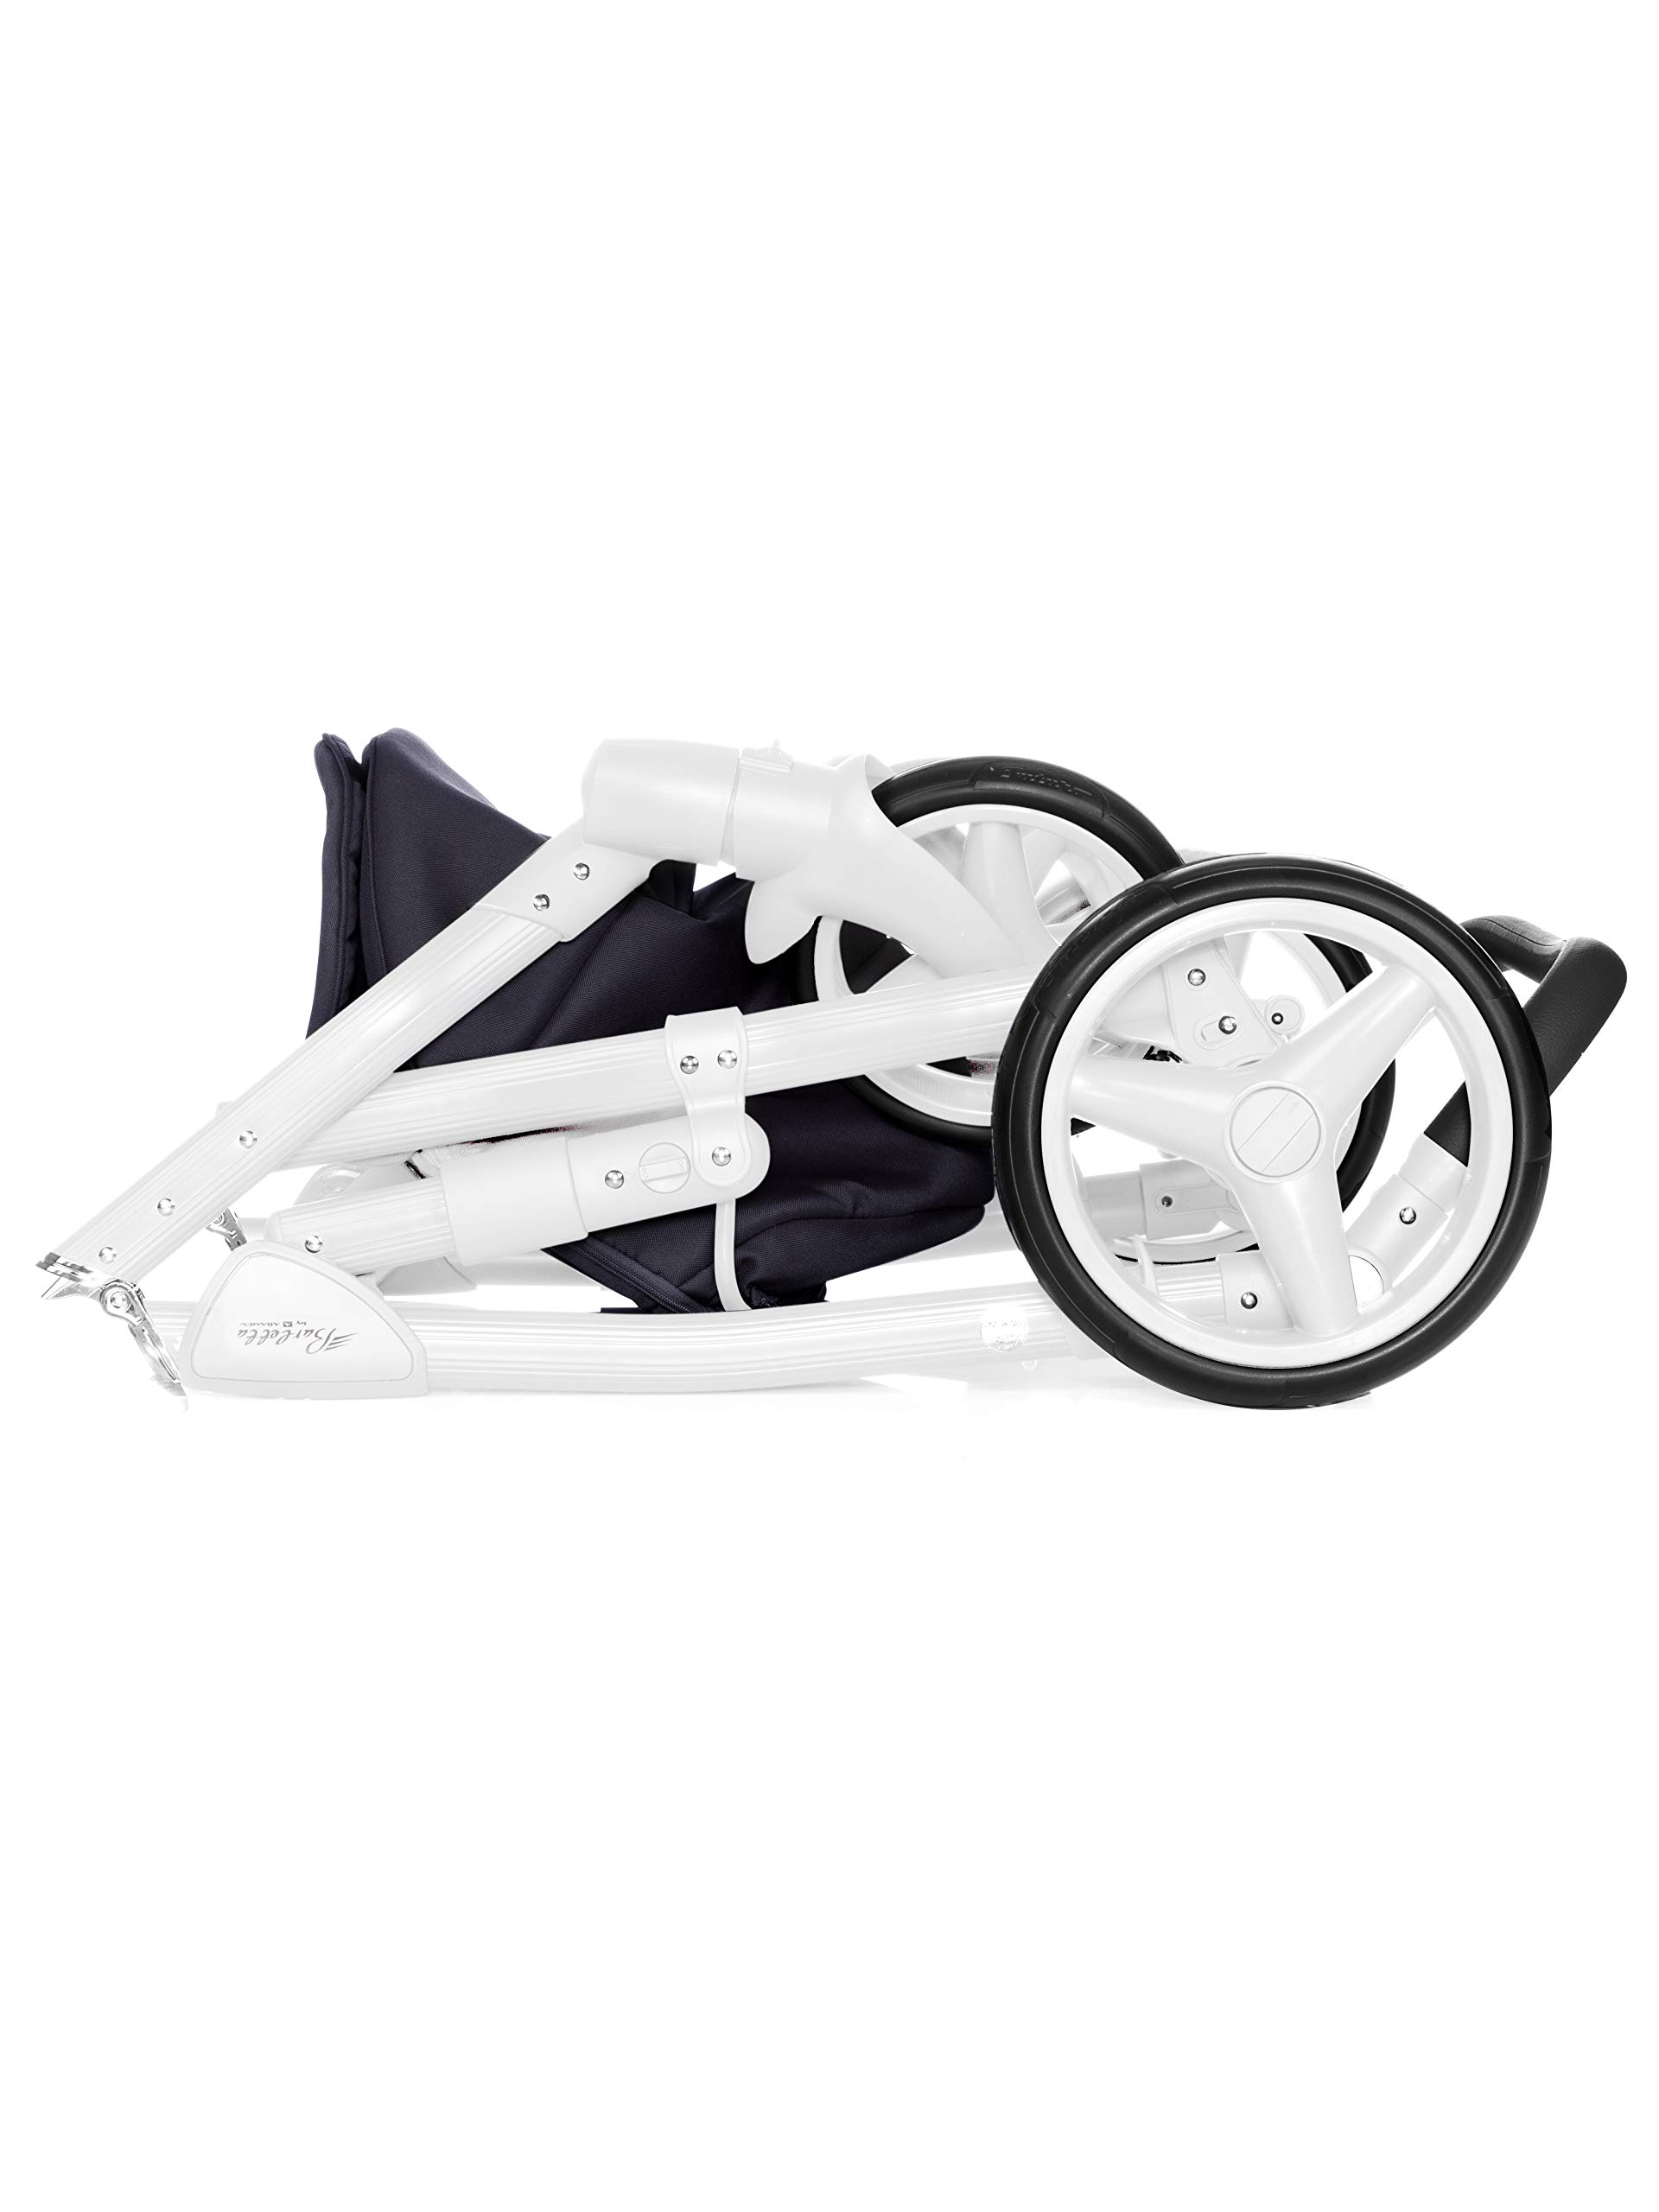 Baby Pram Pushchair Stroller Buggy, Travel System Adamex Barletta New B7 Fox-Navy-White 2in1 + ADAPTORS for CAR Seats: Maxi-COSI CYBEX KIDDY Be Safe Adamex Lockable swivel wheels and lockable side suspension system Light alluminium chassis with polyurethane wheels 2 separate modules + car seats adapters - big and deep baby tub functional sport seat and car seats adapters that can be attached to the following car seats: Maxi-Cosi: City, Cabrio fix, Pebble Cybex: Aton Kiddy: Evoluna i-Size, Evolution Pro 2 Be Safe: iZi Go 6